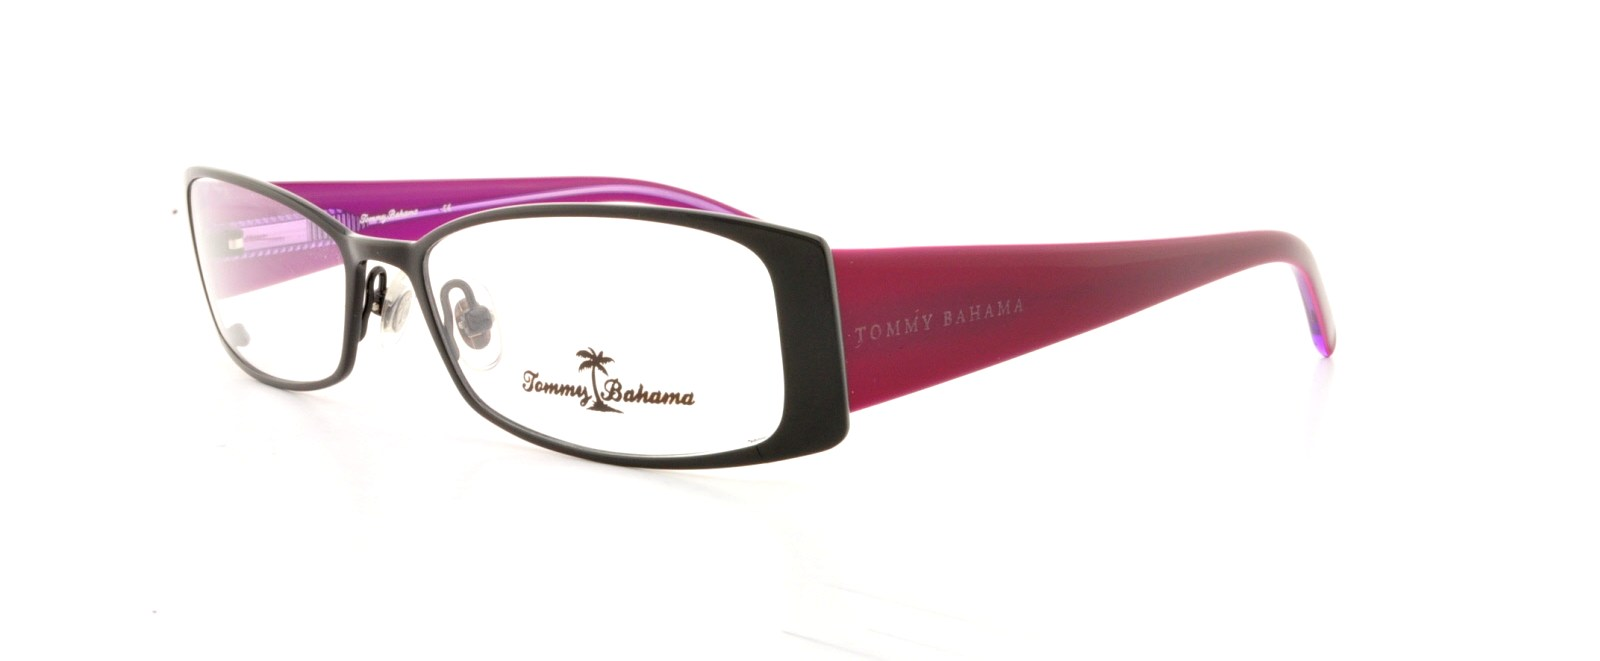 5d0d11941e2 Picture of Tommy Bahama Eyeglasses TB154